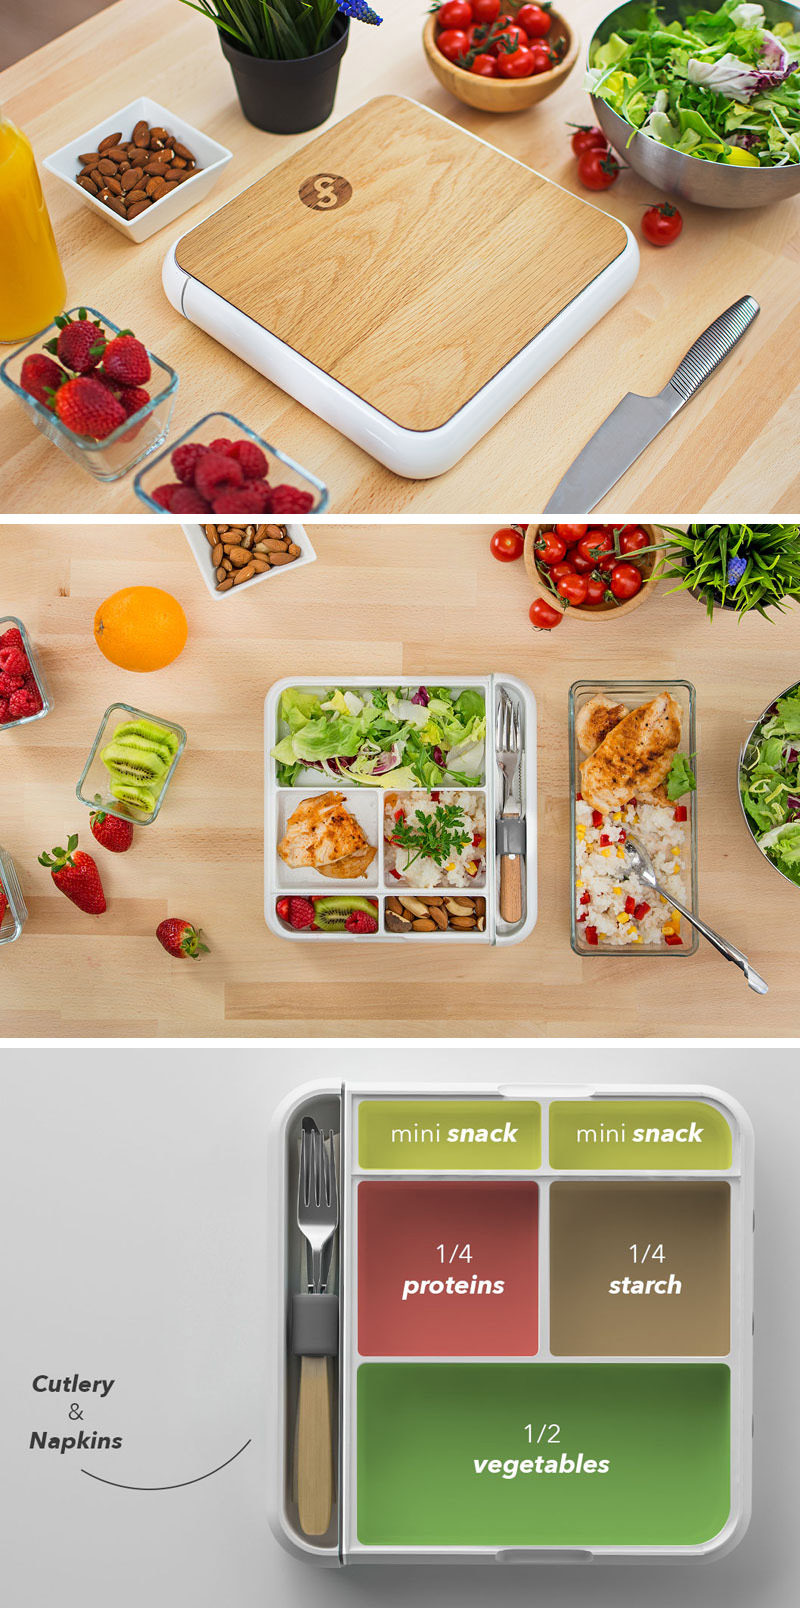 Alan, a designer based New York, has created and launched Fittbo. Sleek in design, the Fittbo is a functional modern lunchbox that helps you eat healthy meals with ease.